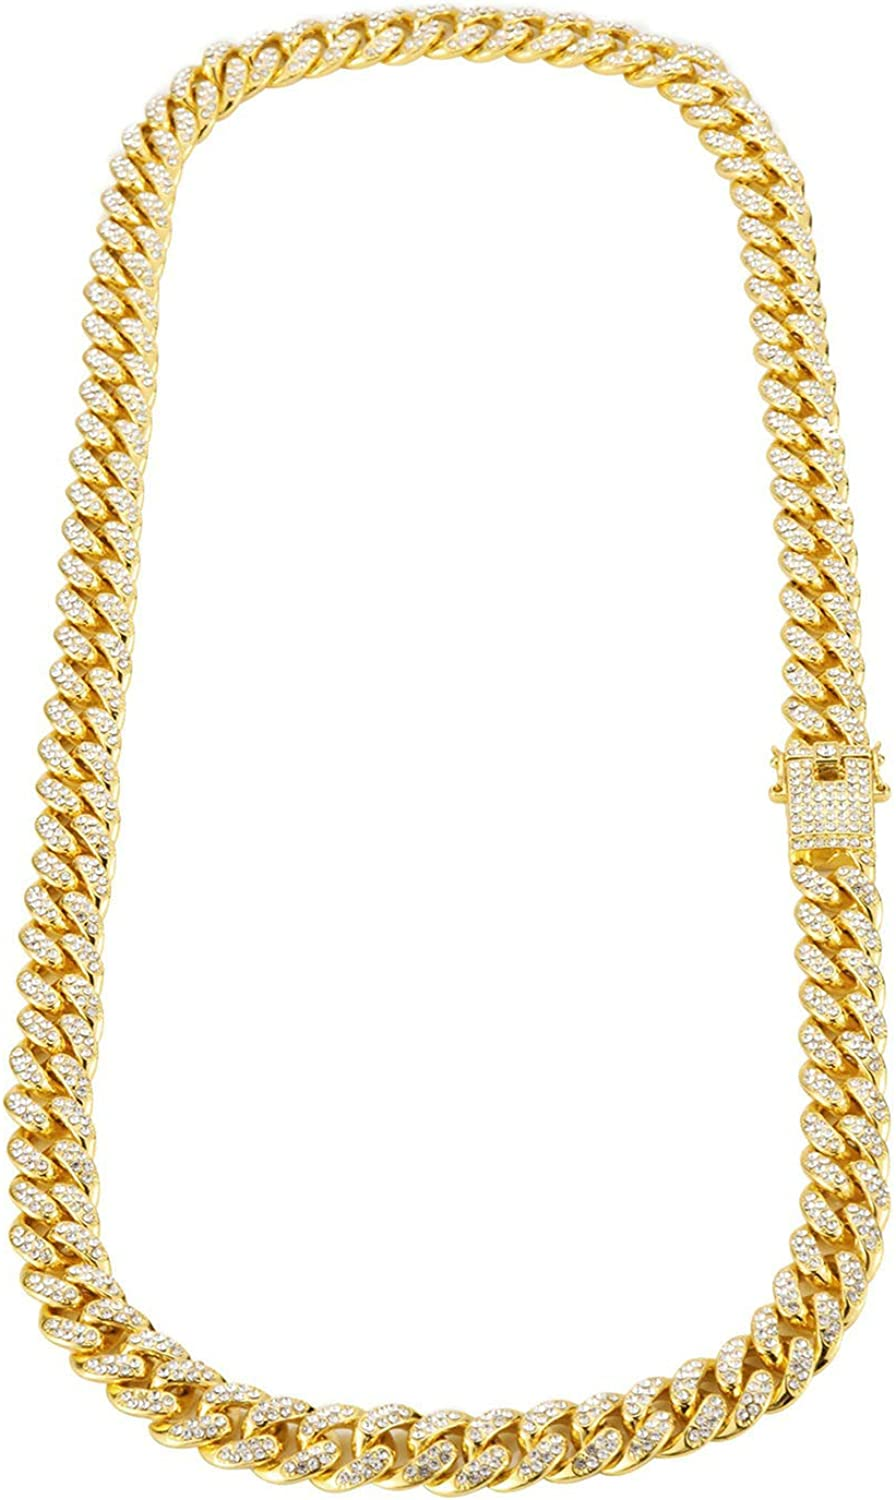 KnSam Mens Chain Necklace Alloy Personalized Necklace Bar Curb Chain Cubic Zirconia White